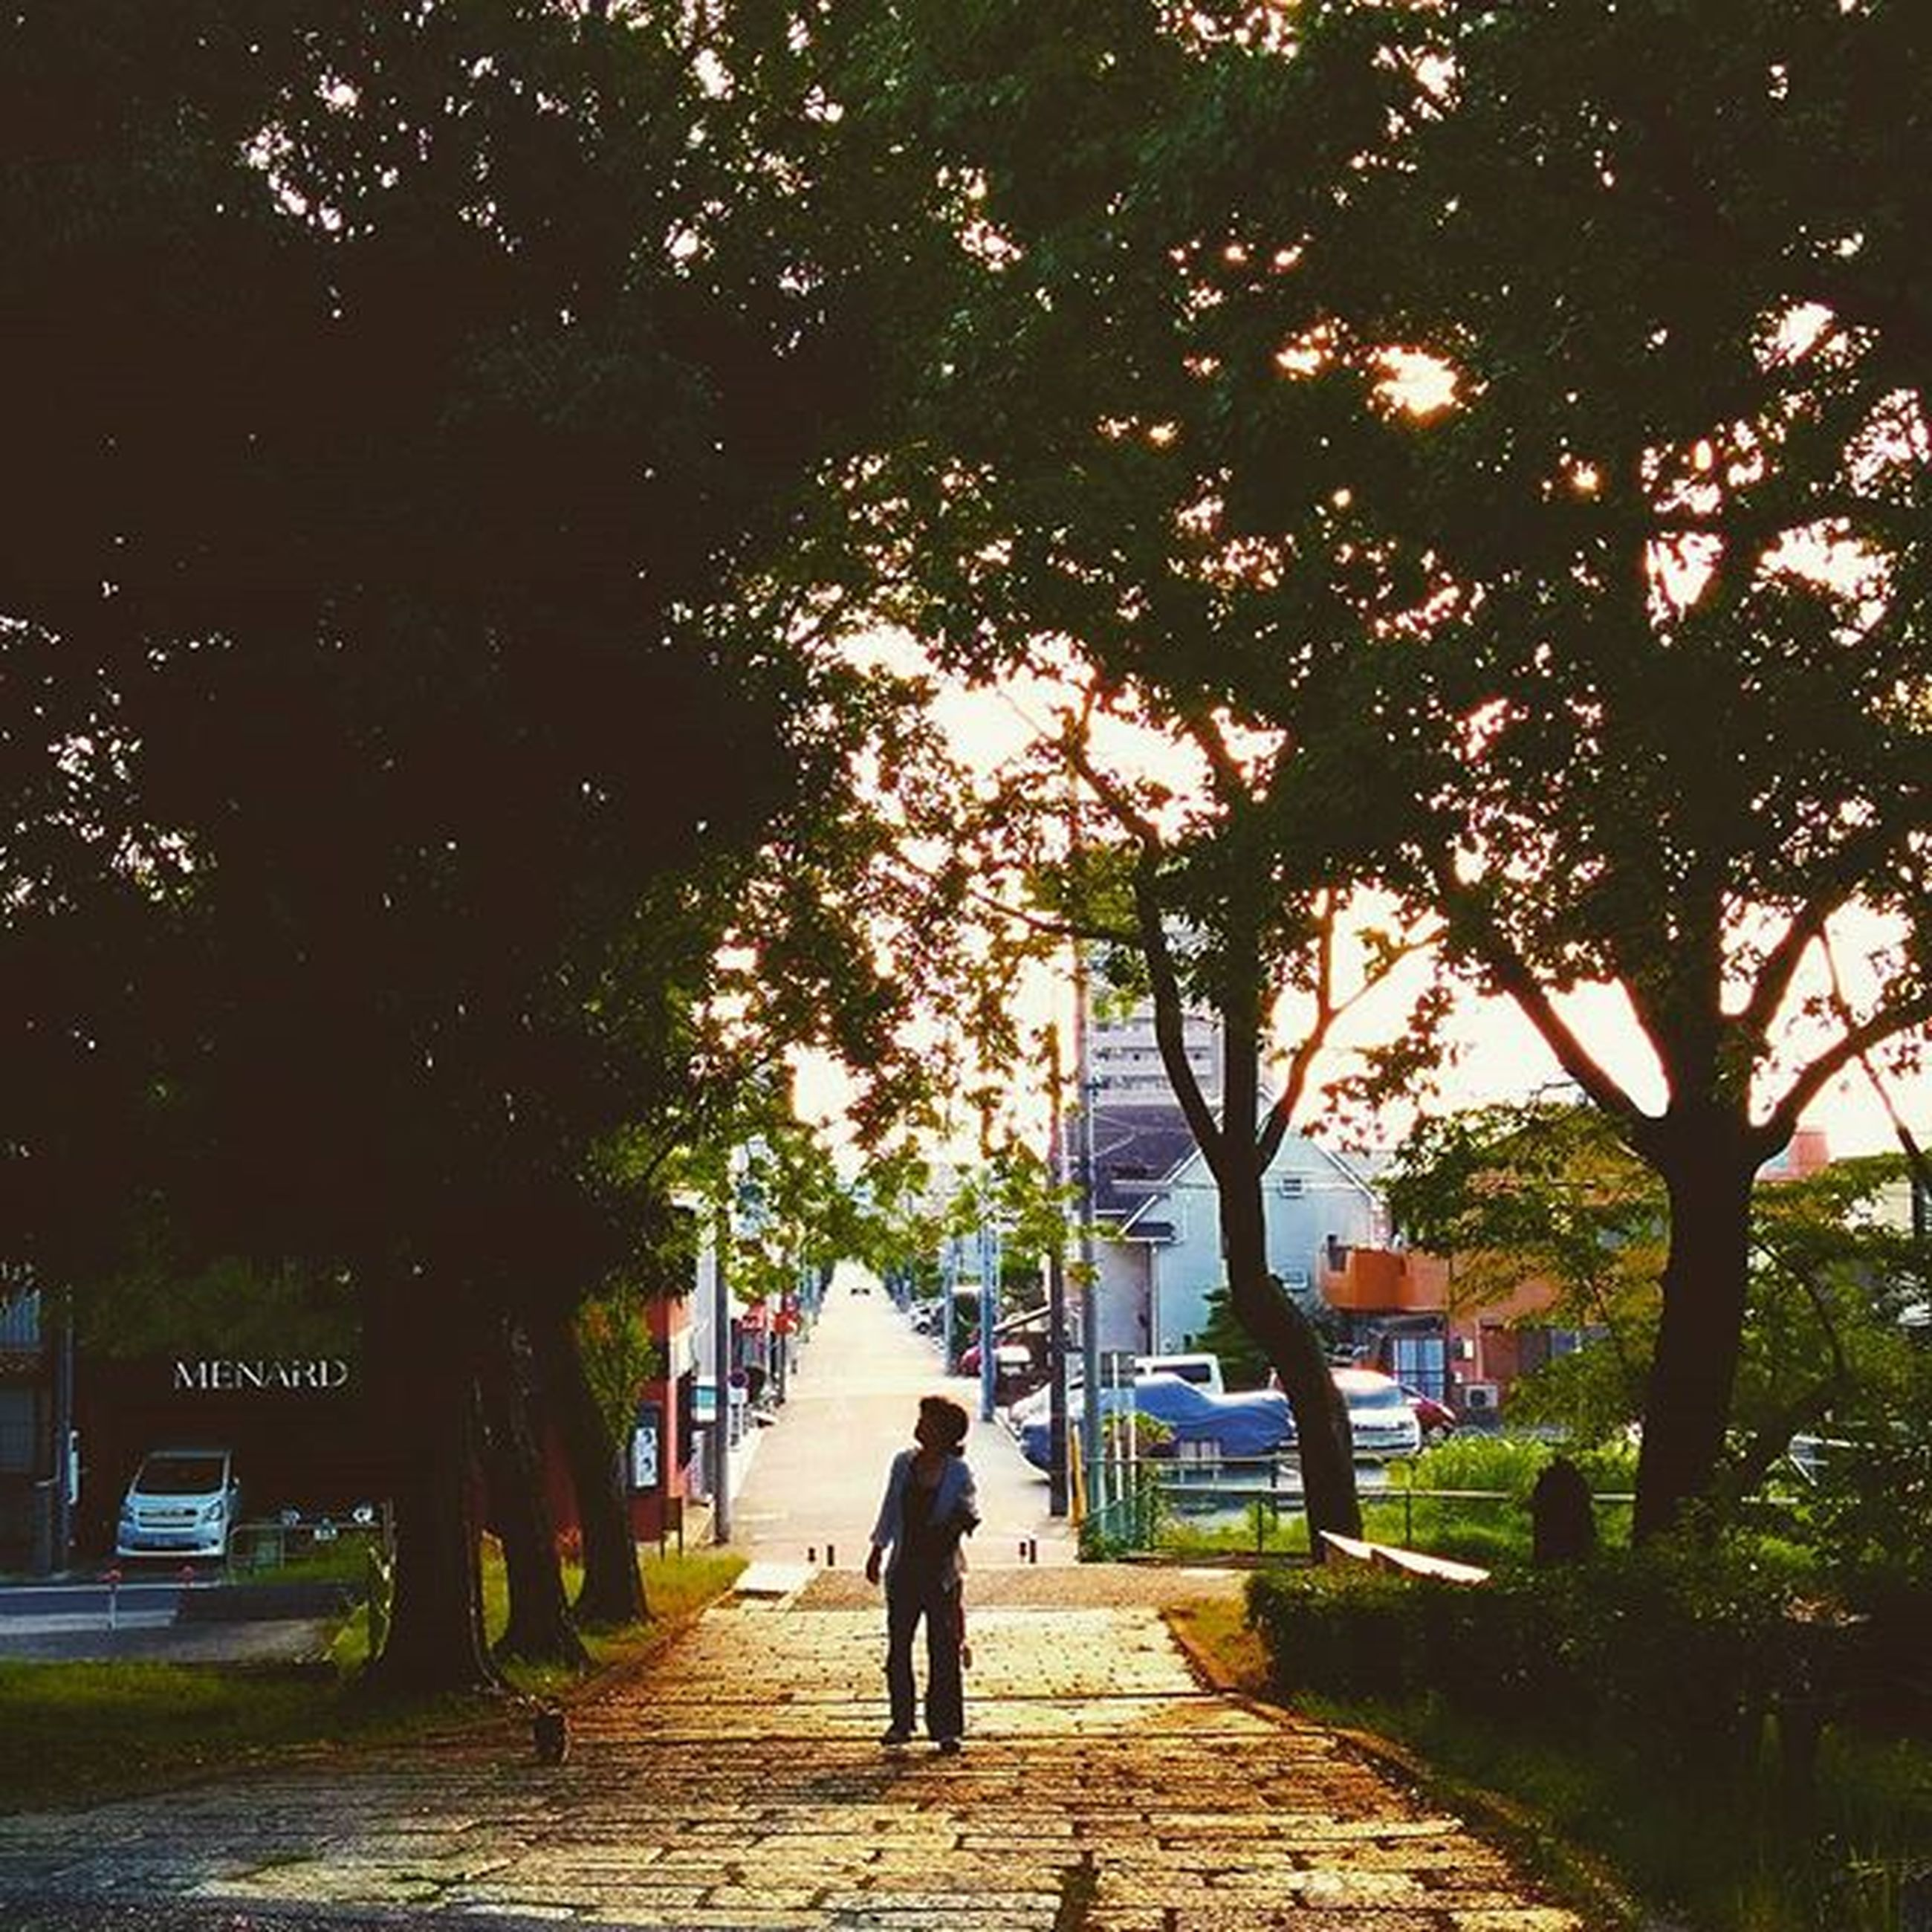 tree, lifestyles, walking, rear view, full length, street, person, men, the way forward, leisure activity, building exterior, footpath, architecture, sunlight, sidewalk, built structure, city, city life